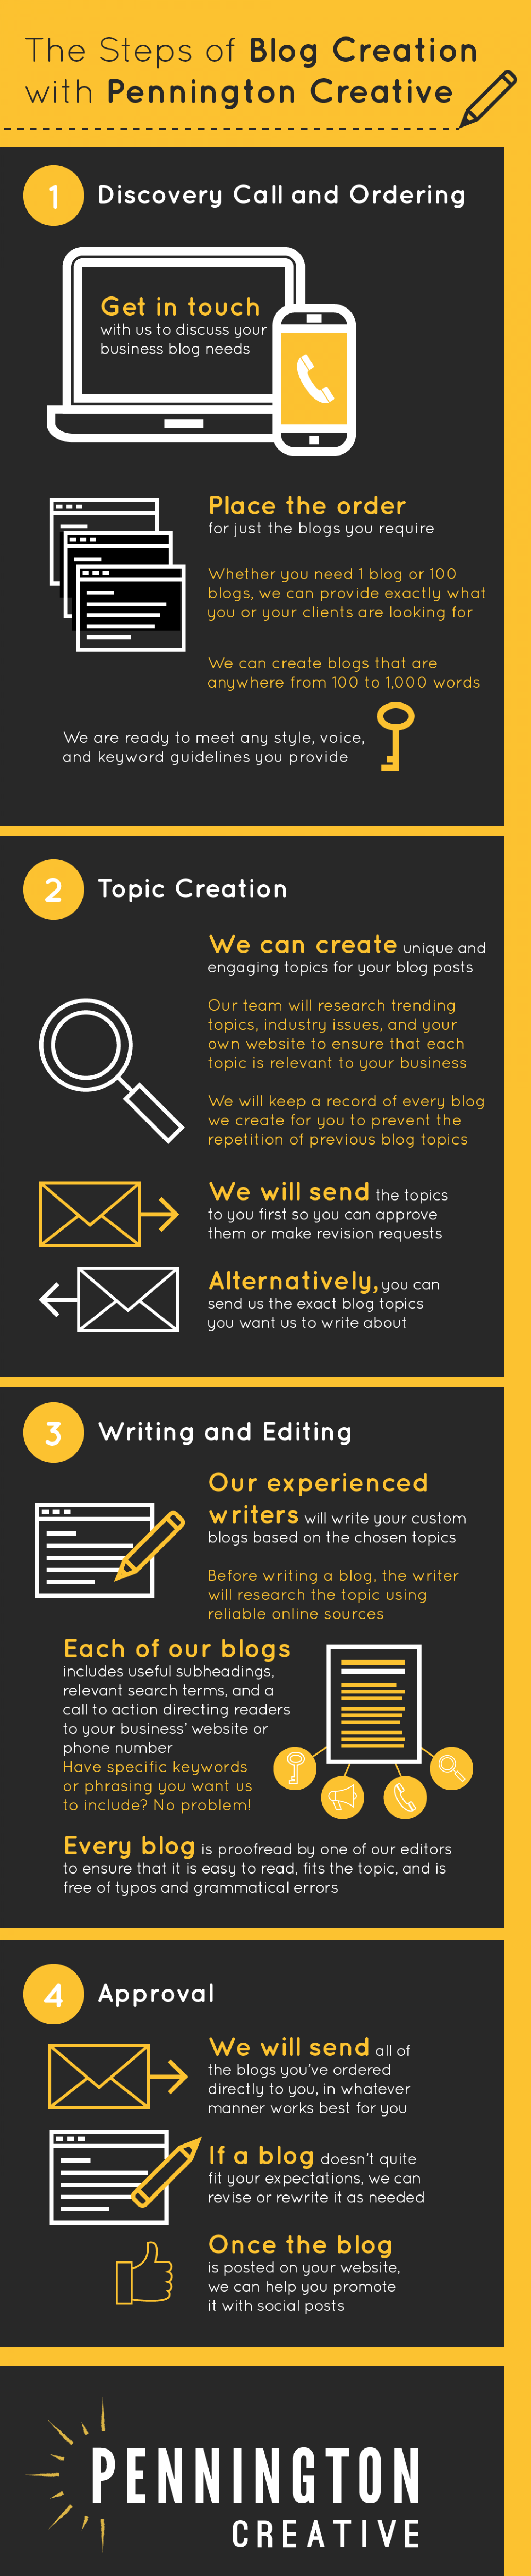 The Steps of Blog Creation with Pennington Creative Infographic